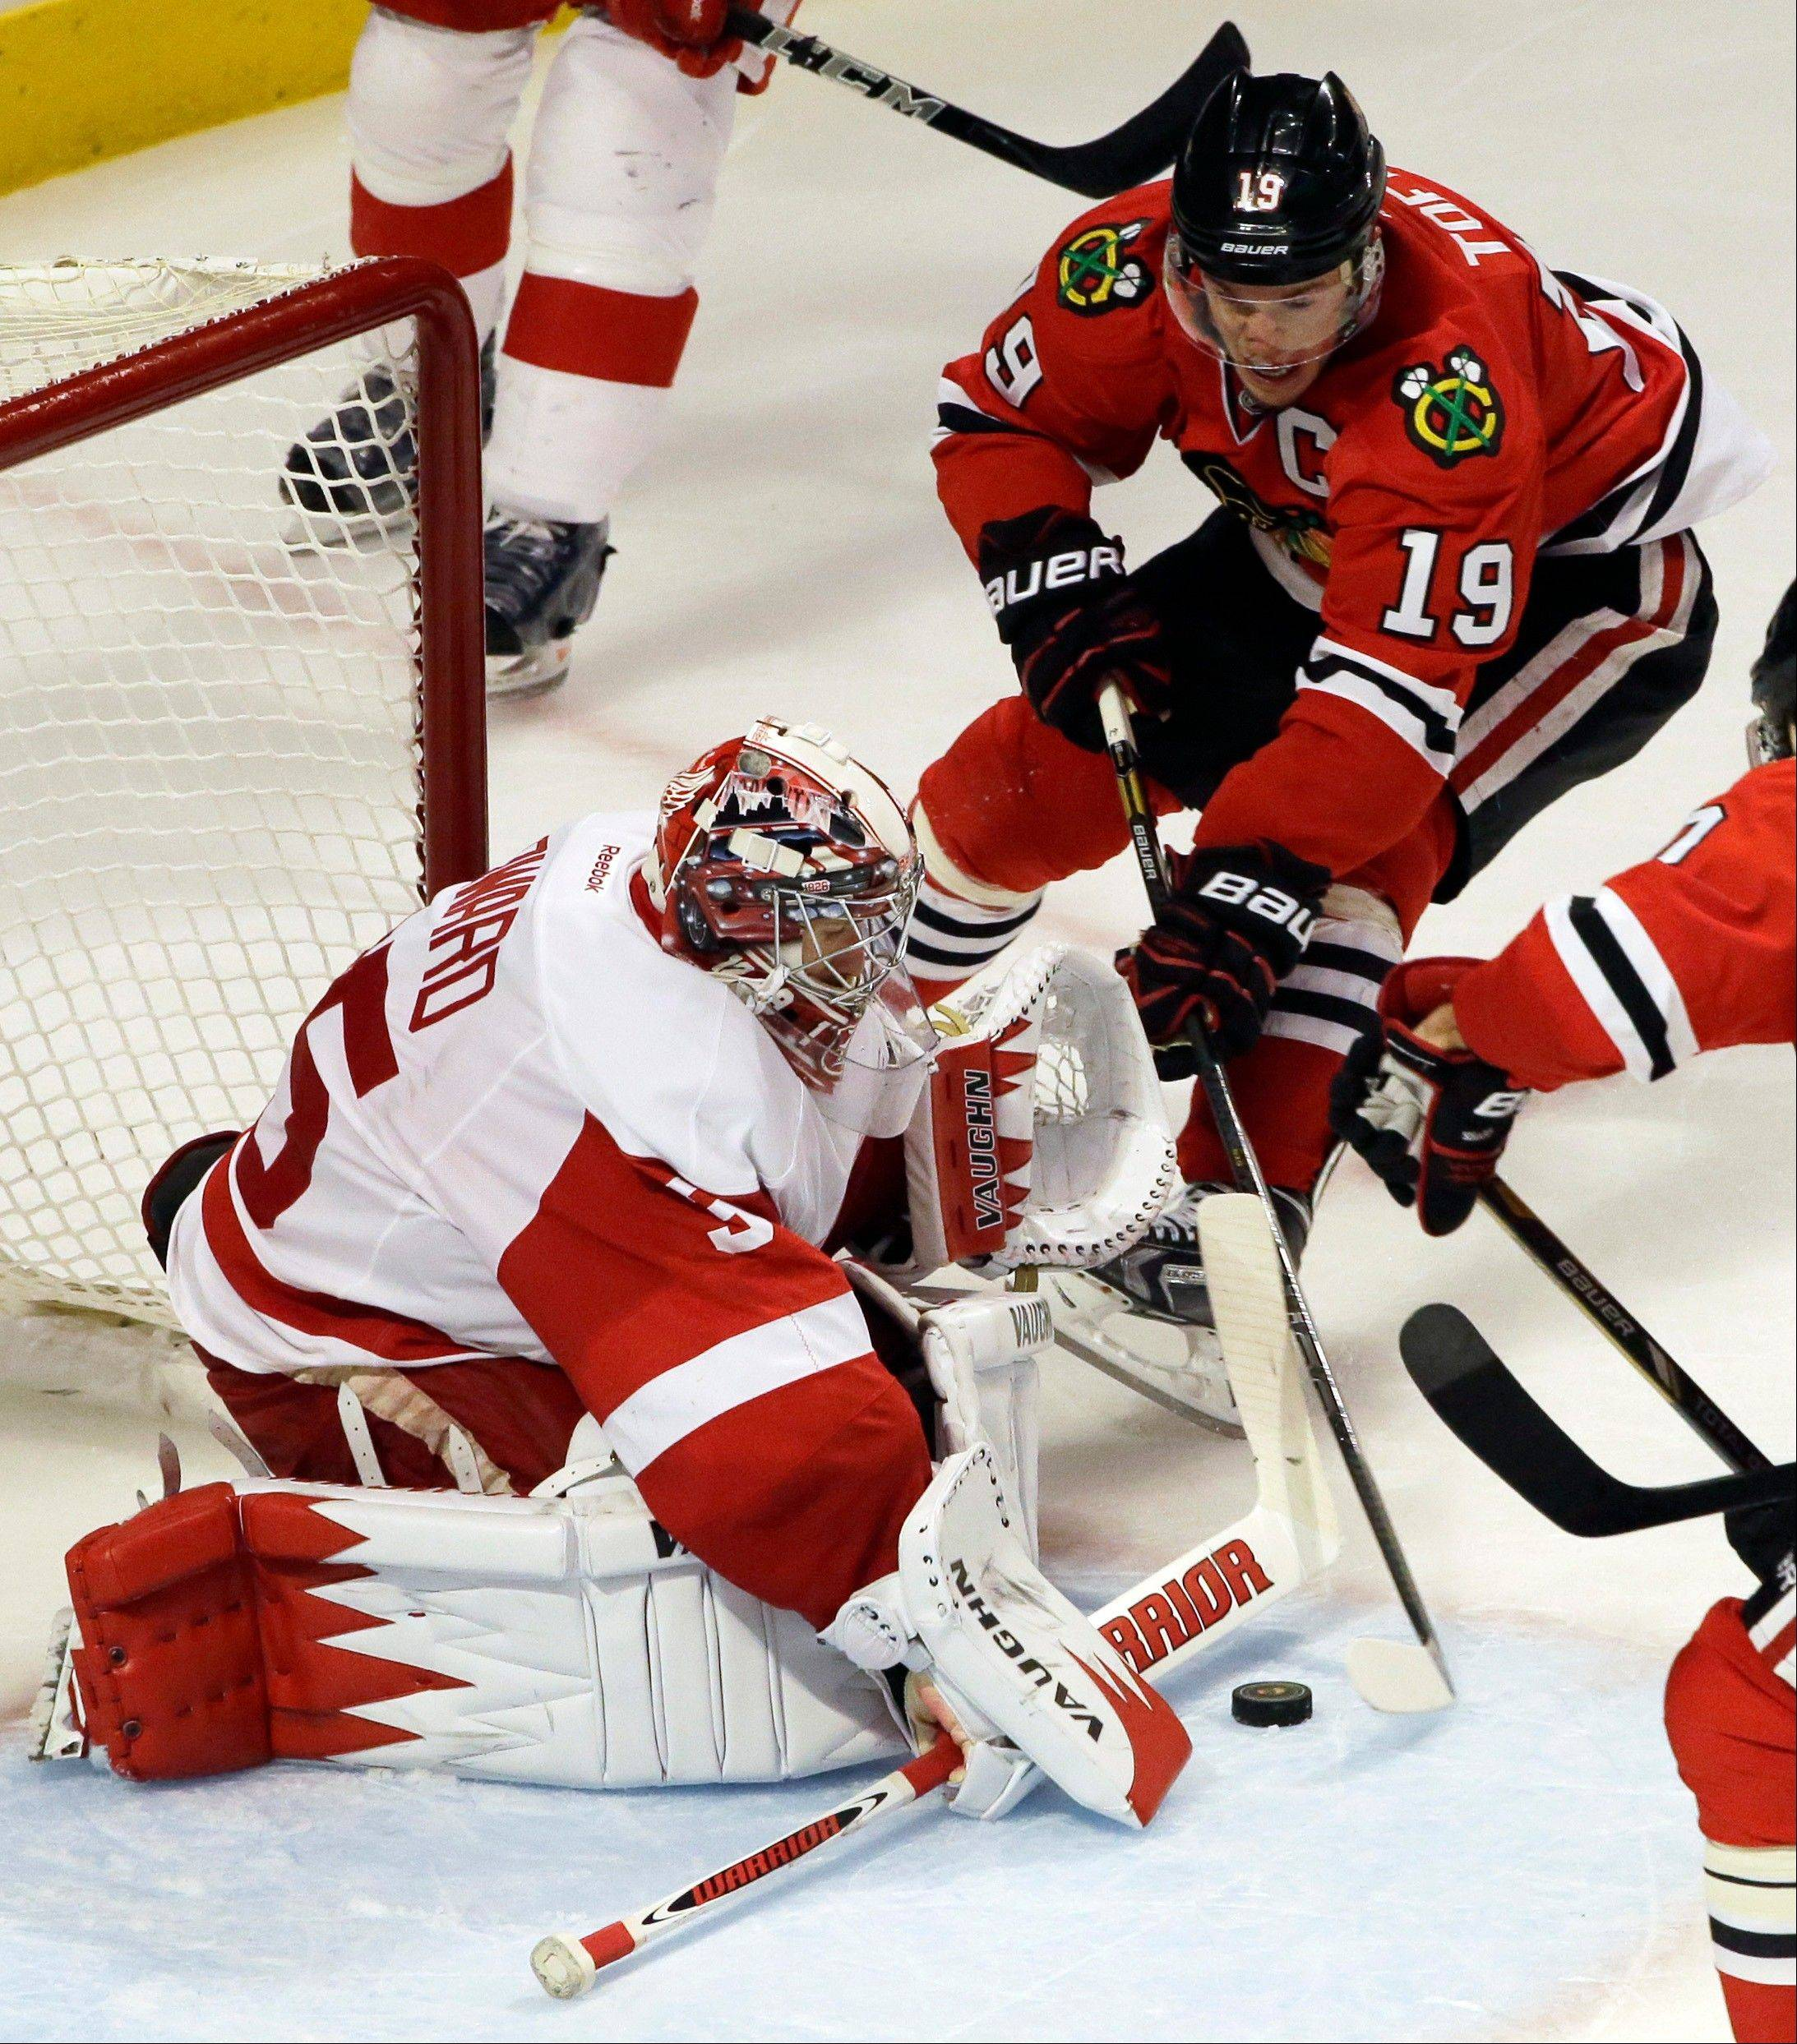 Red Wings goalie Jimmy Howard saves a shot by Blackhawks captain Jonathan Toews during the third period of Game 2 in the Western Conference semifinals at the United Center on Saturday, The Red Wings won 4-1 to tie the series at 1-1.